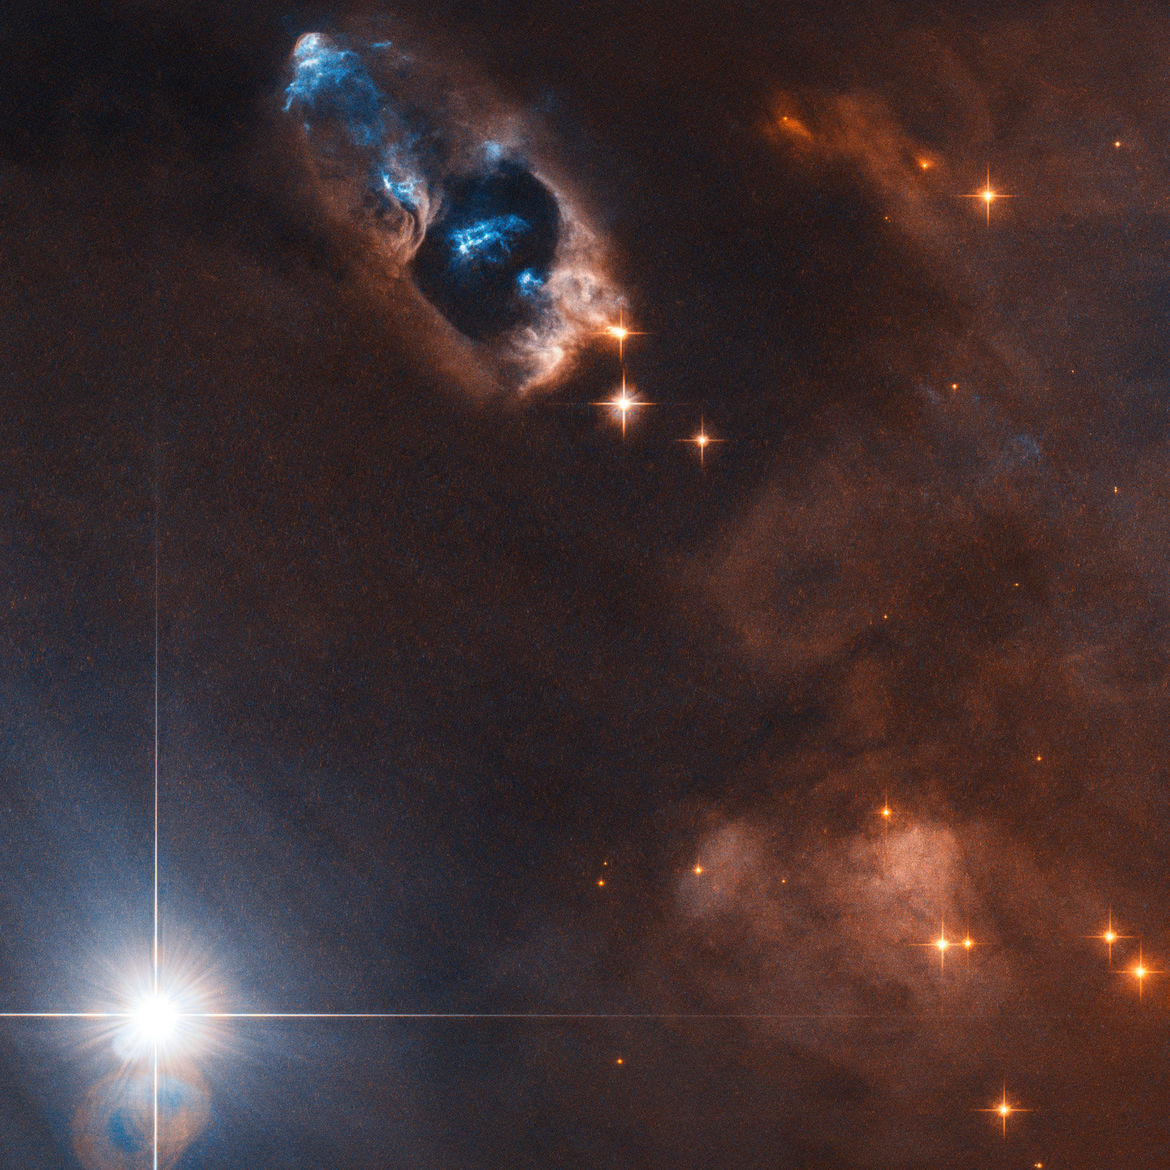 Young stars in the nebula NGC 1333 blast out twin beams of matter, creating eerie blue glows in this Hubble image. Credit: ESA/Hubble & NASA, K. Stapelfeldt; CC BY 4.0